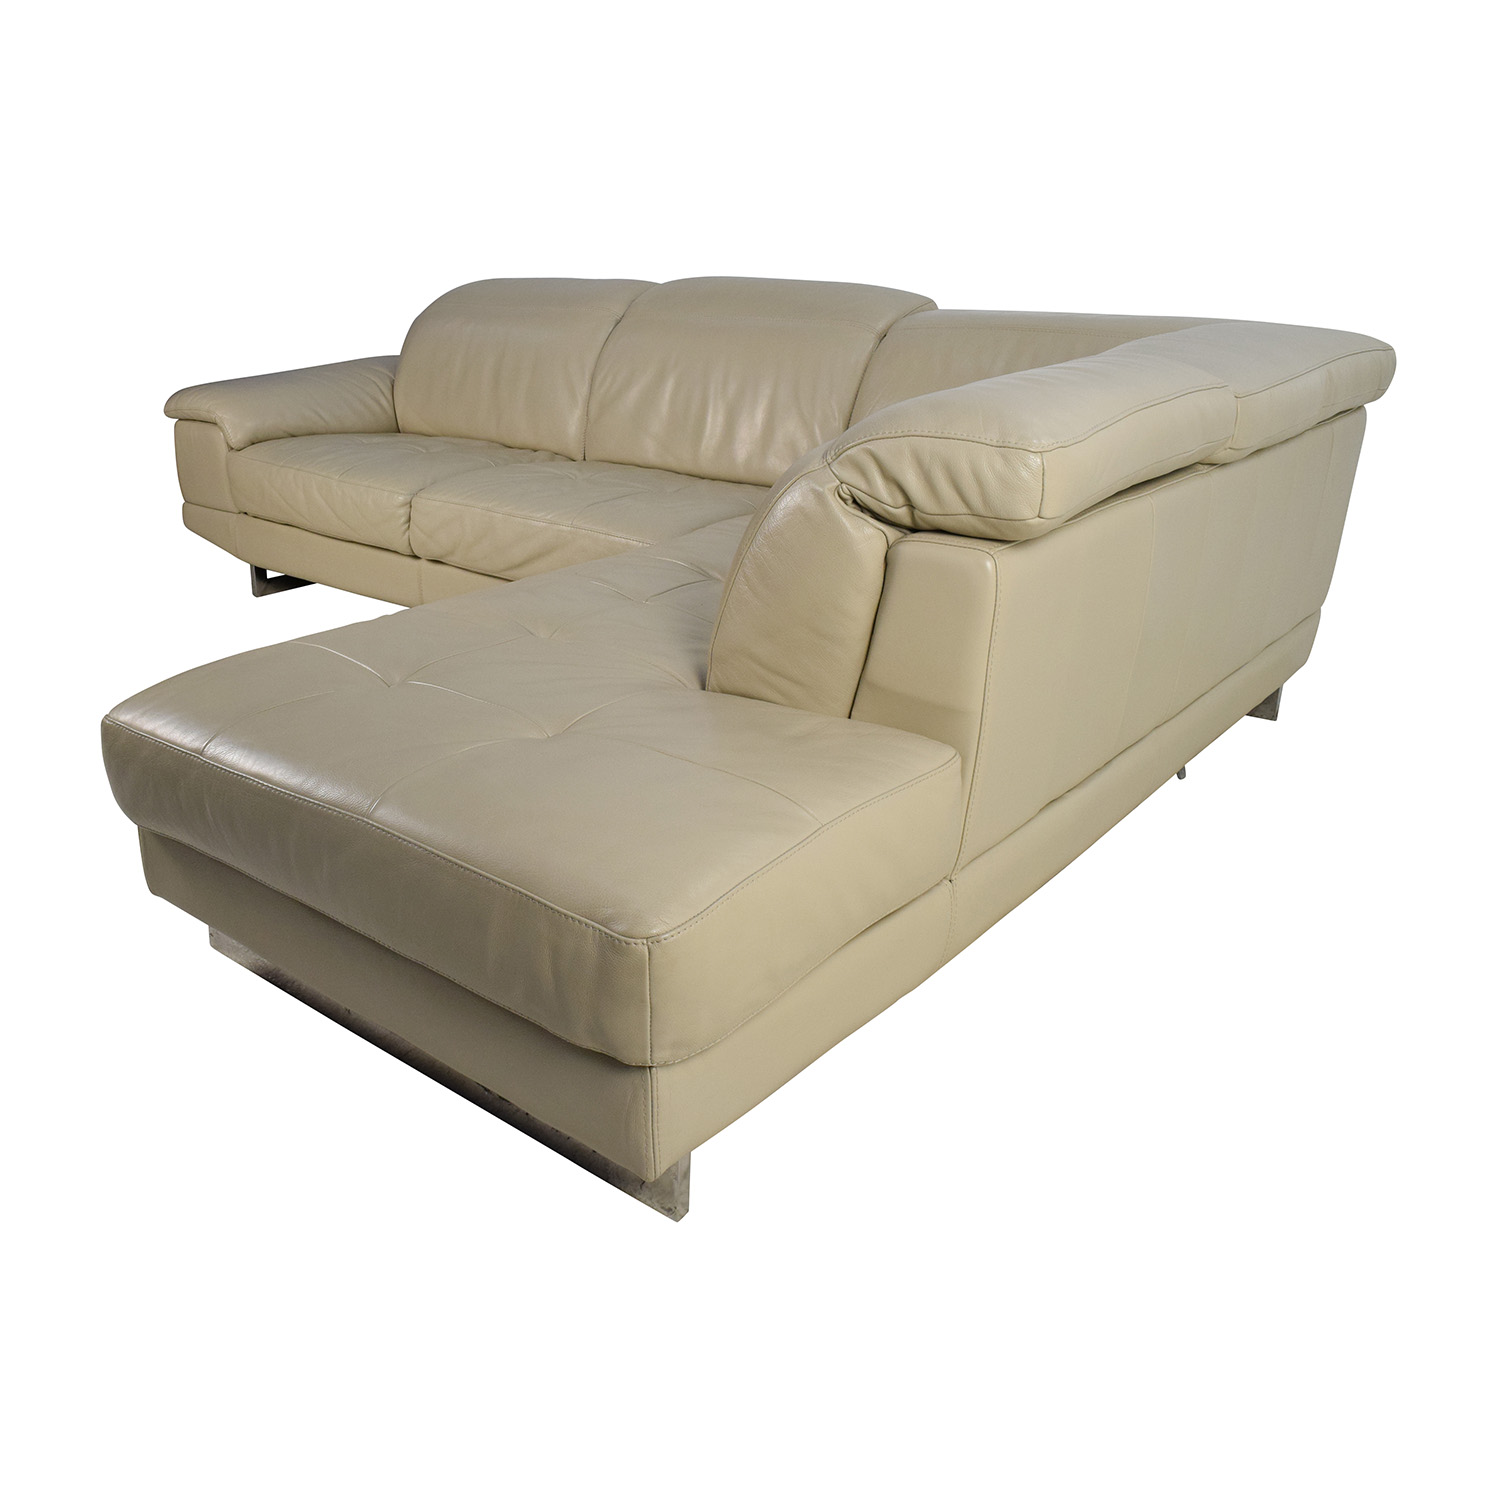 beige and brown leather sectional sofa with built in footrests newport gwent 83 off italian couch adjustable